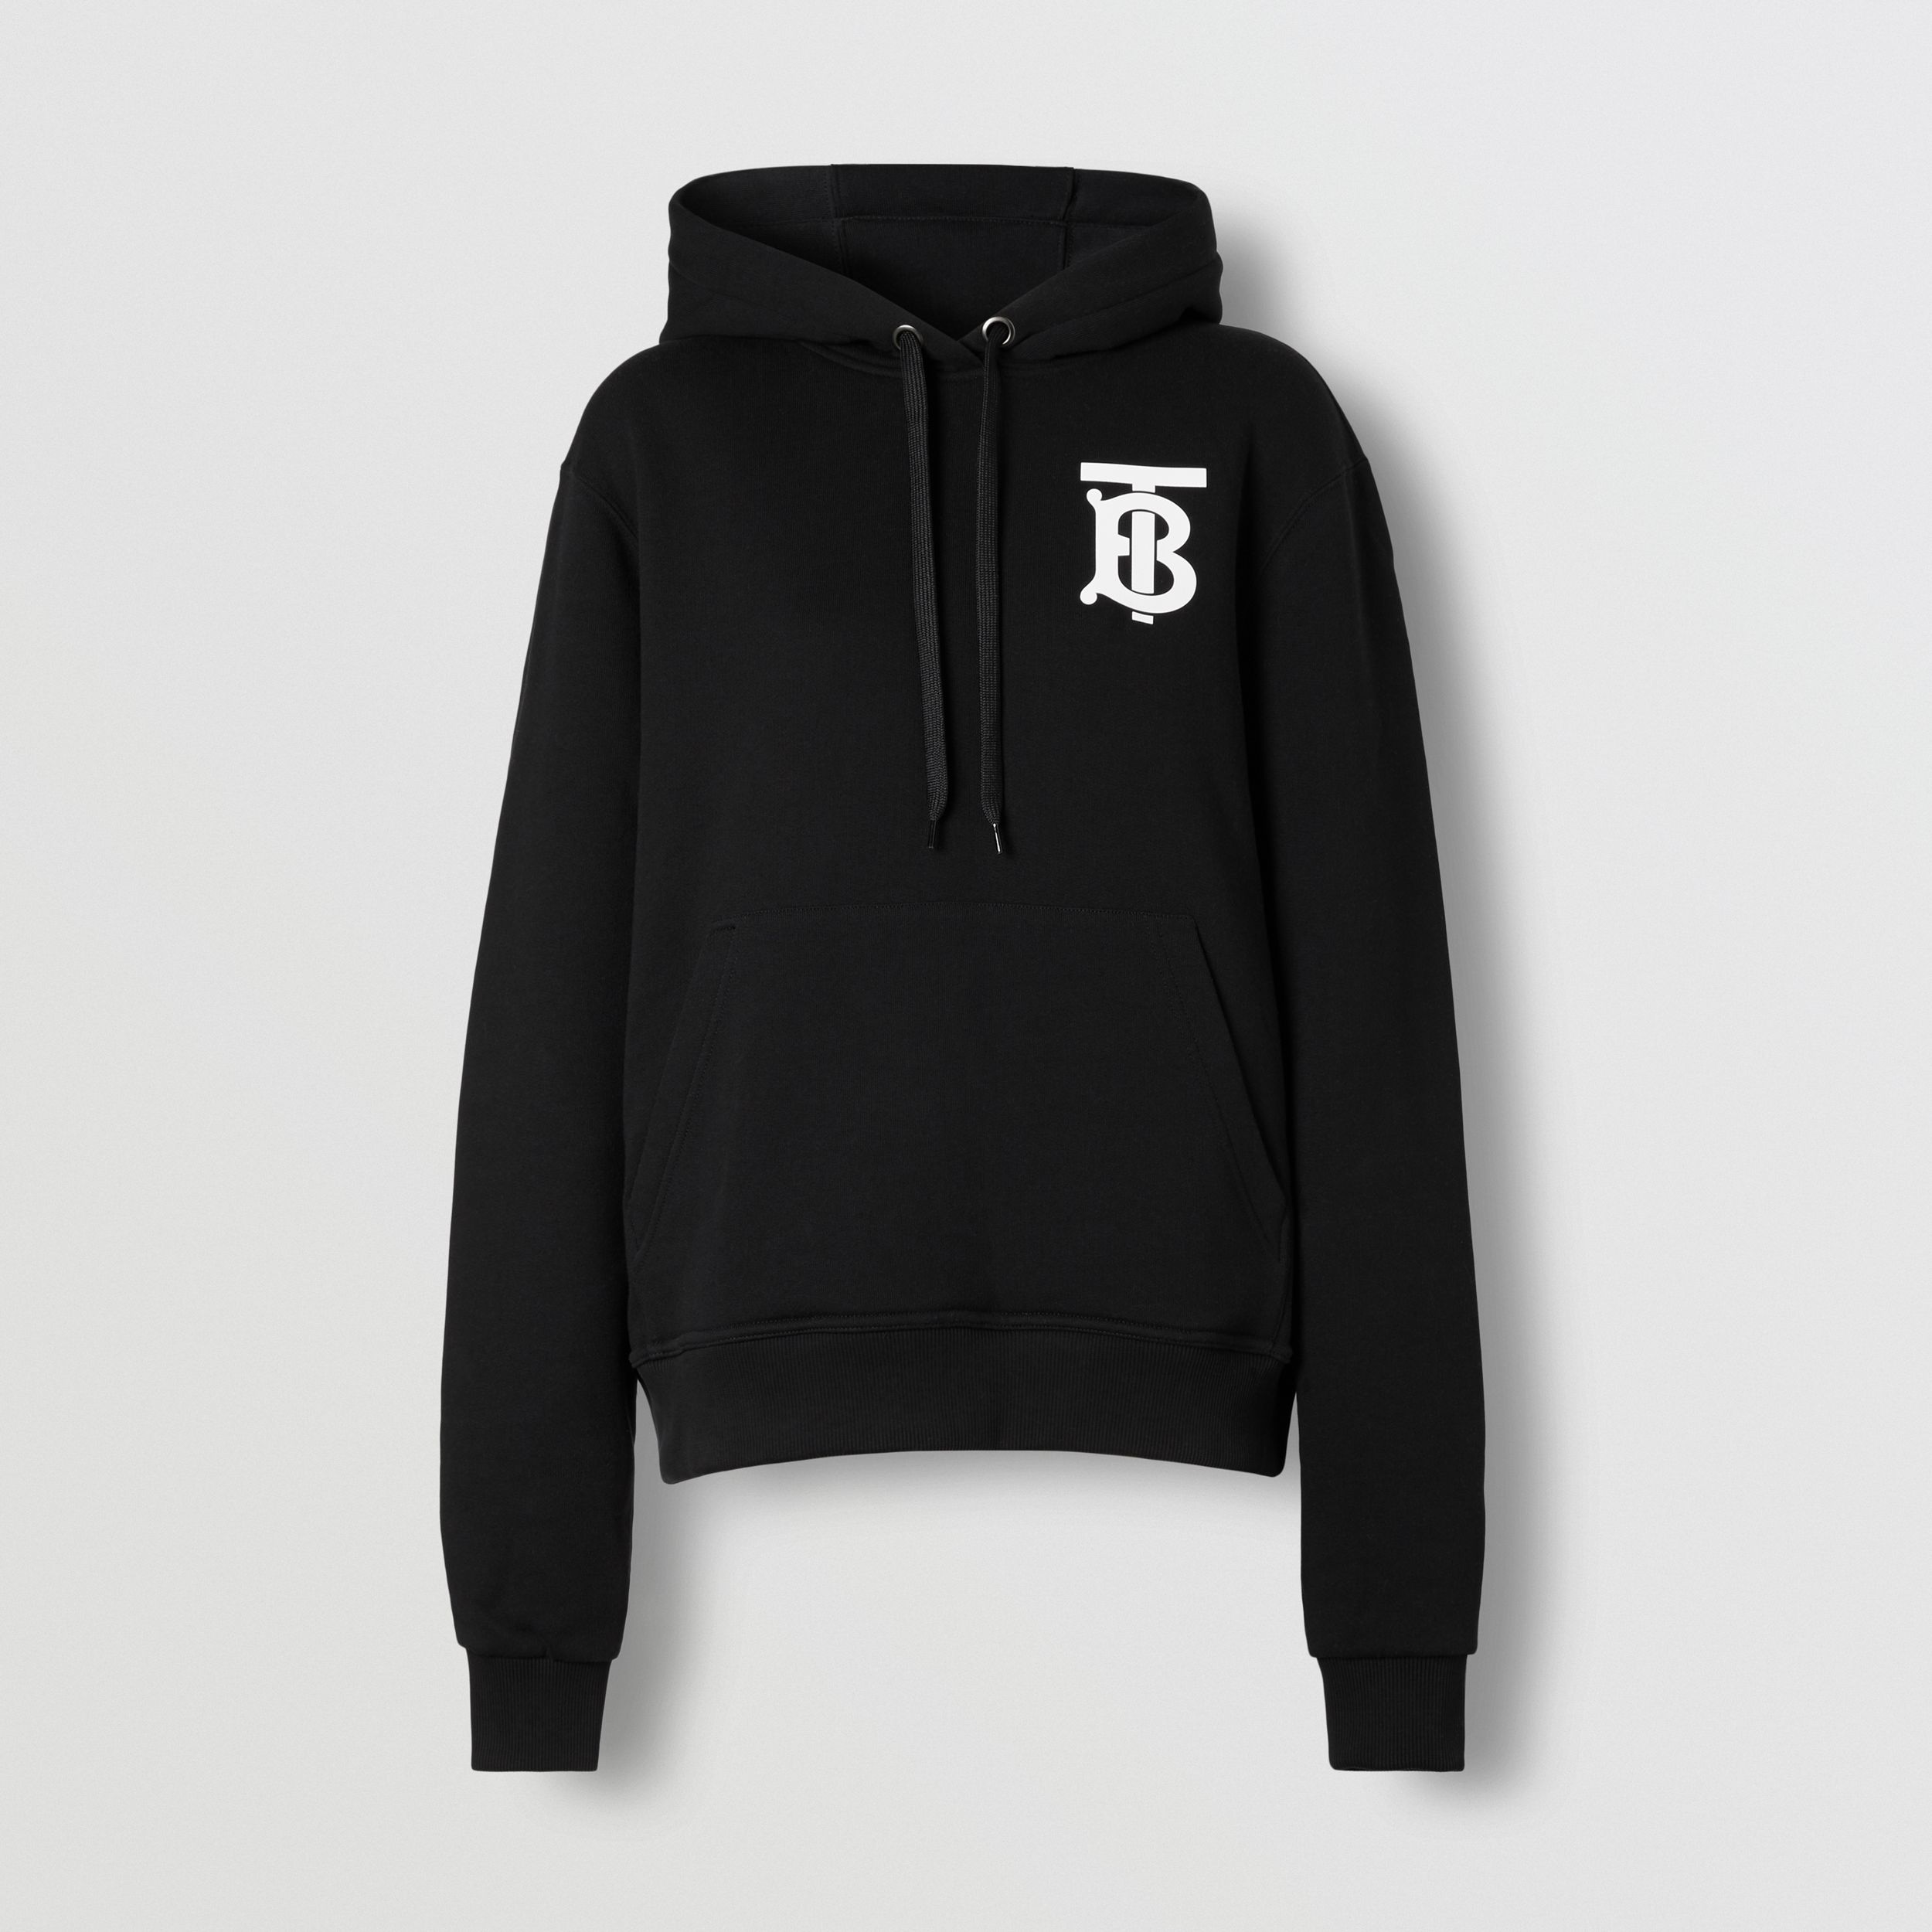 Monogram Motif Cotton Hoodie in Black - Women | Burberry - 4